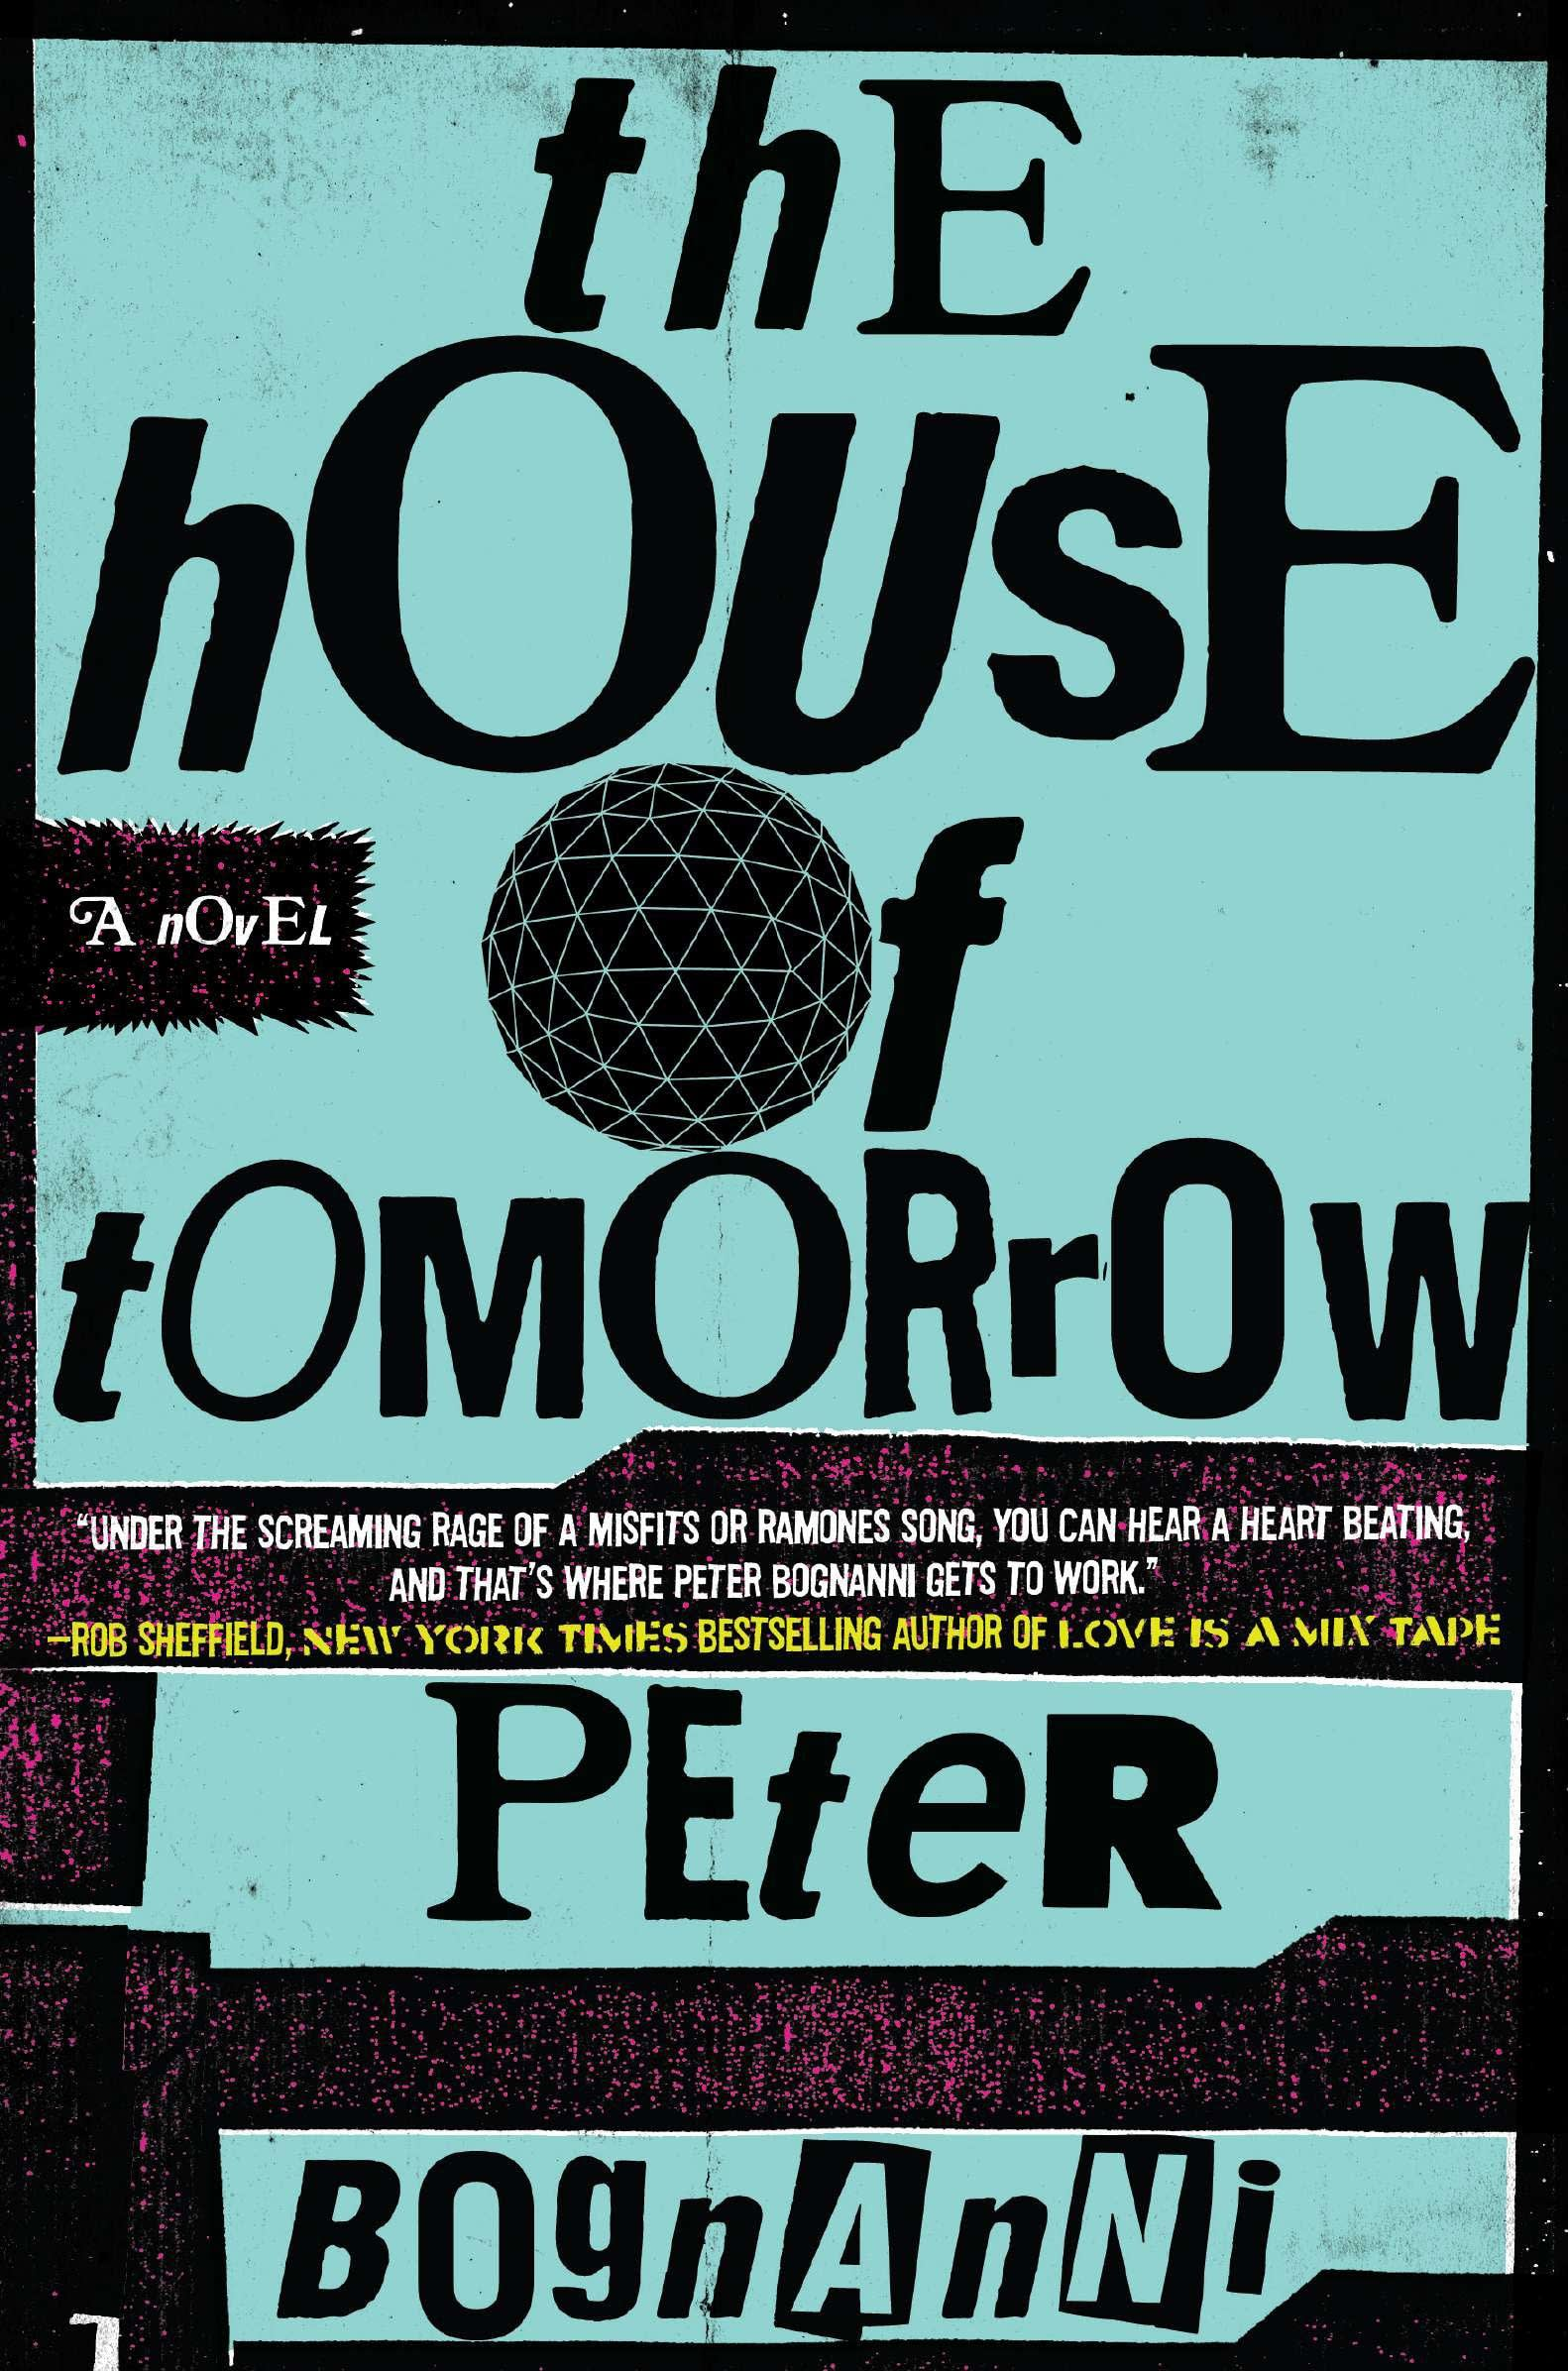 'The House of Tomorrow' by Peter Bognanni